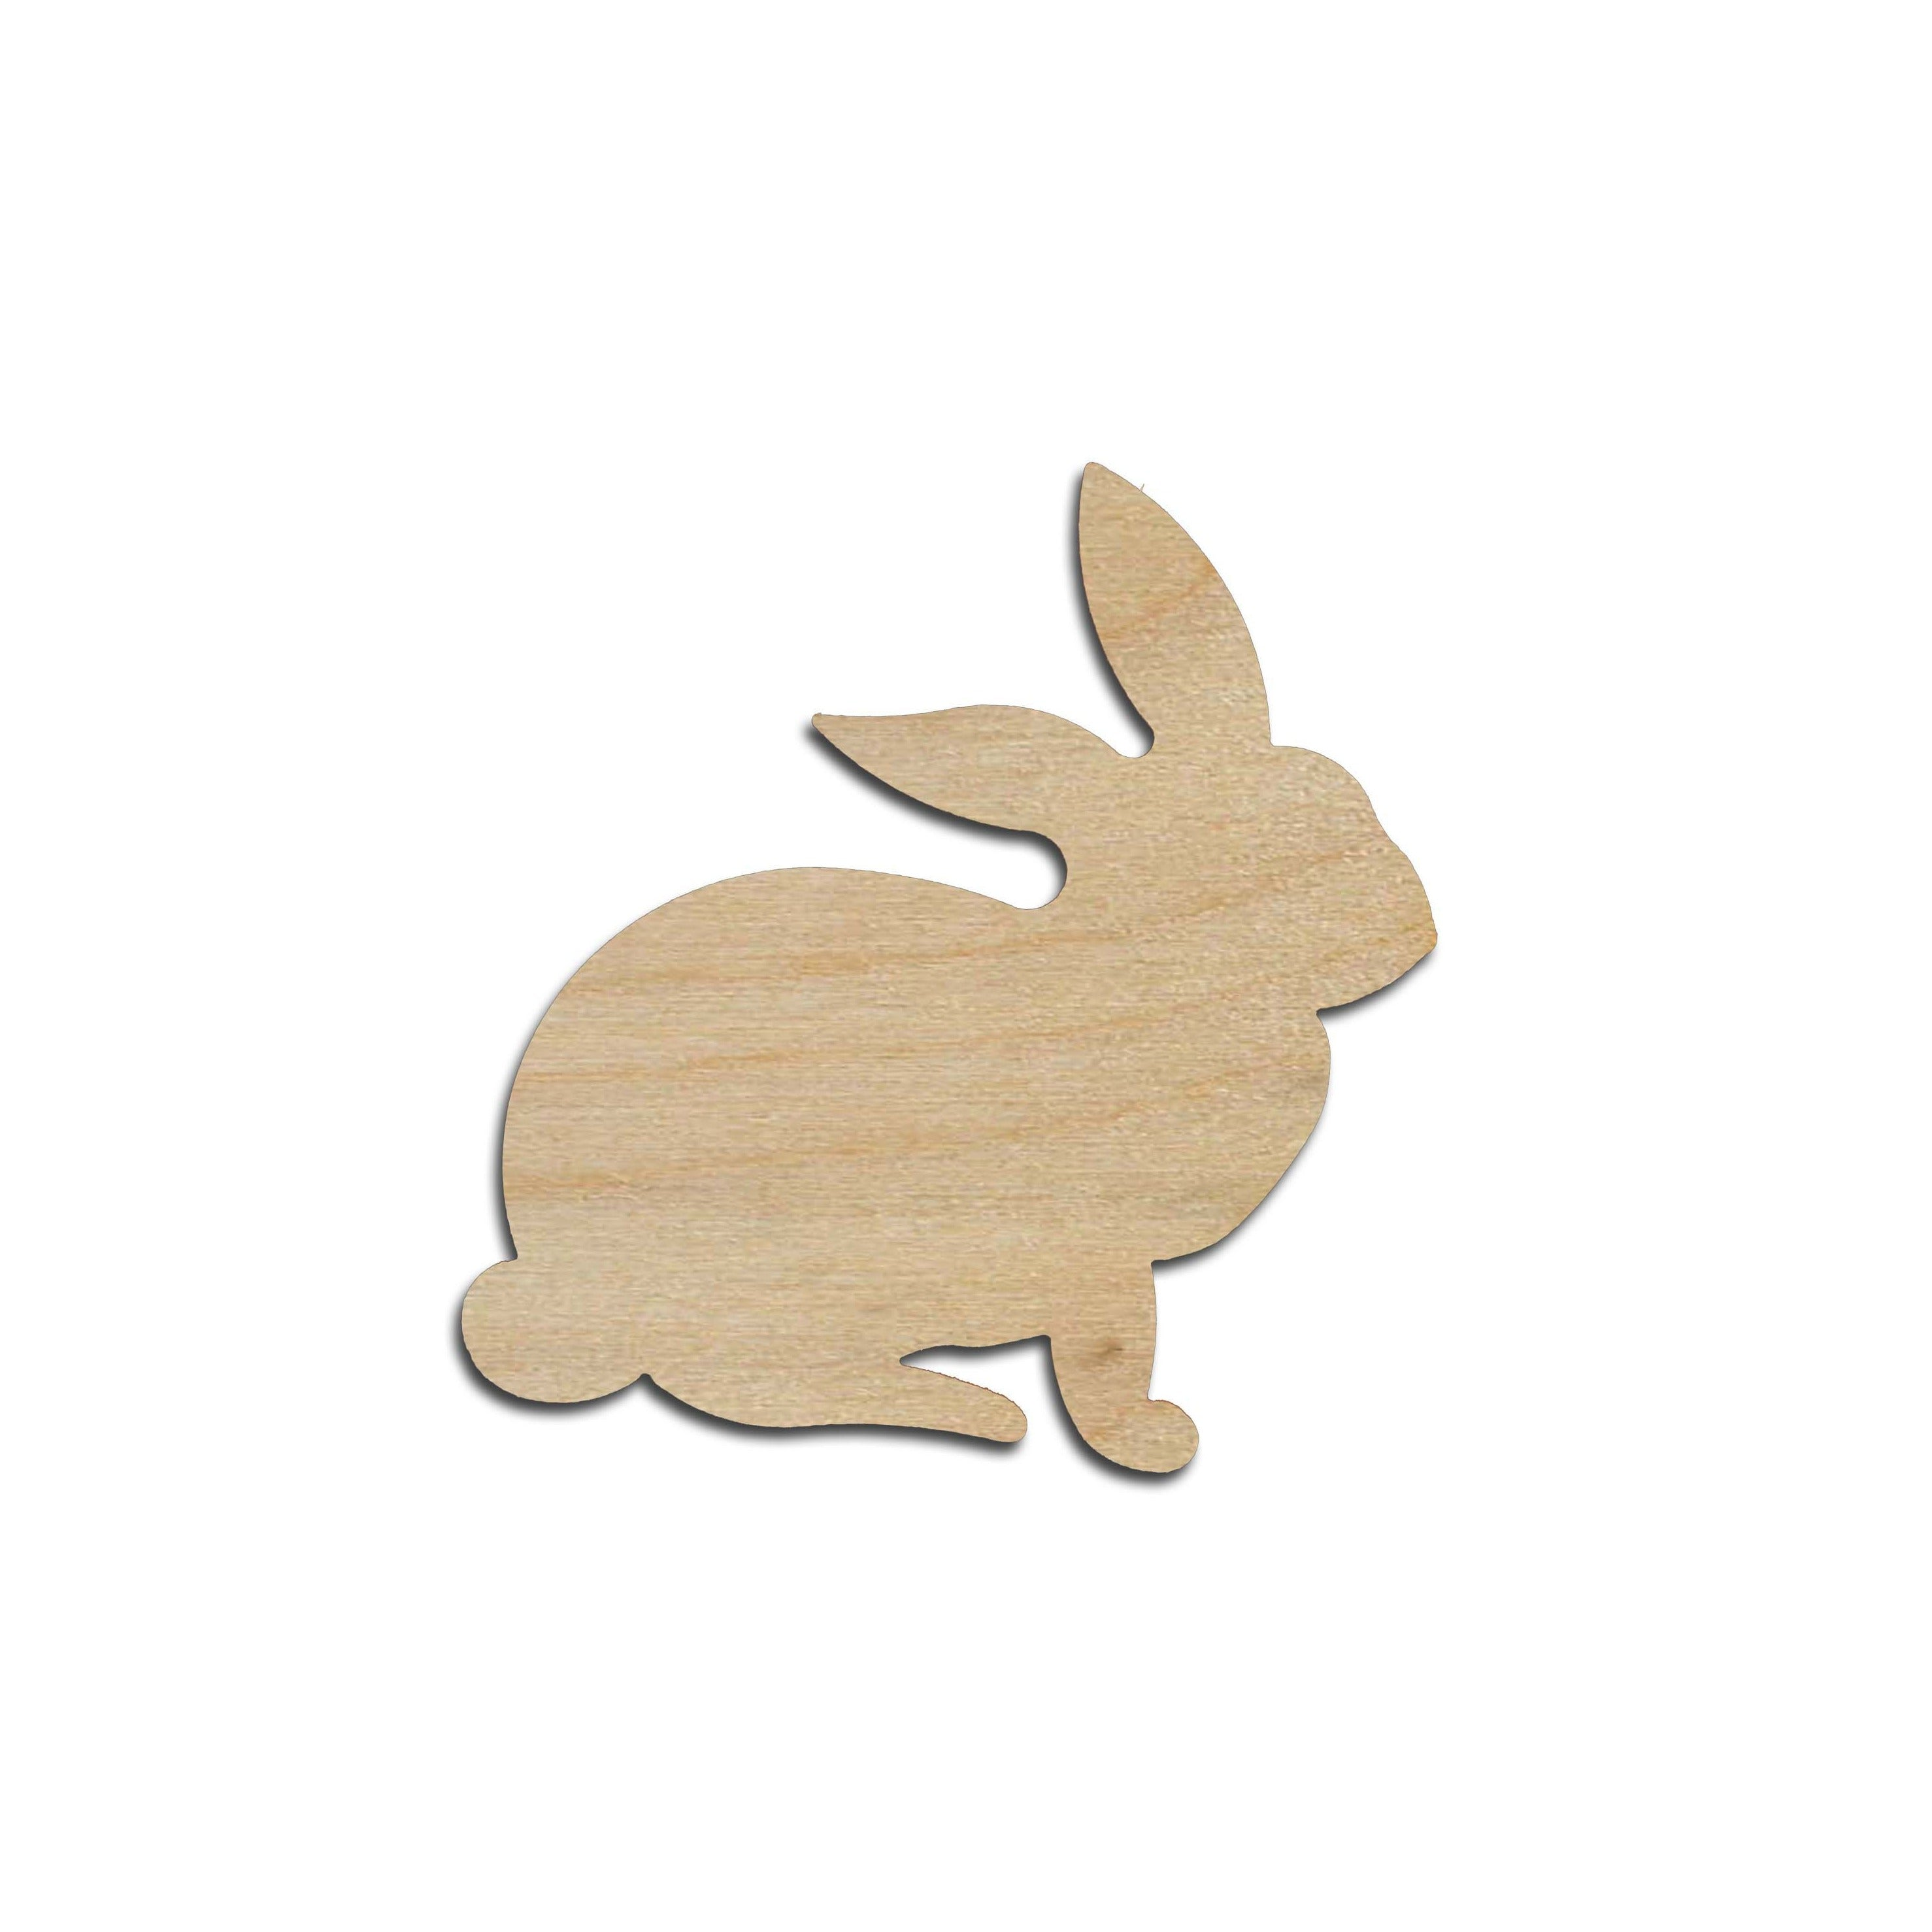 Unfinished Bunny 1 Laser Cut Out Wood Shape Craft Supply